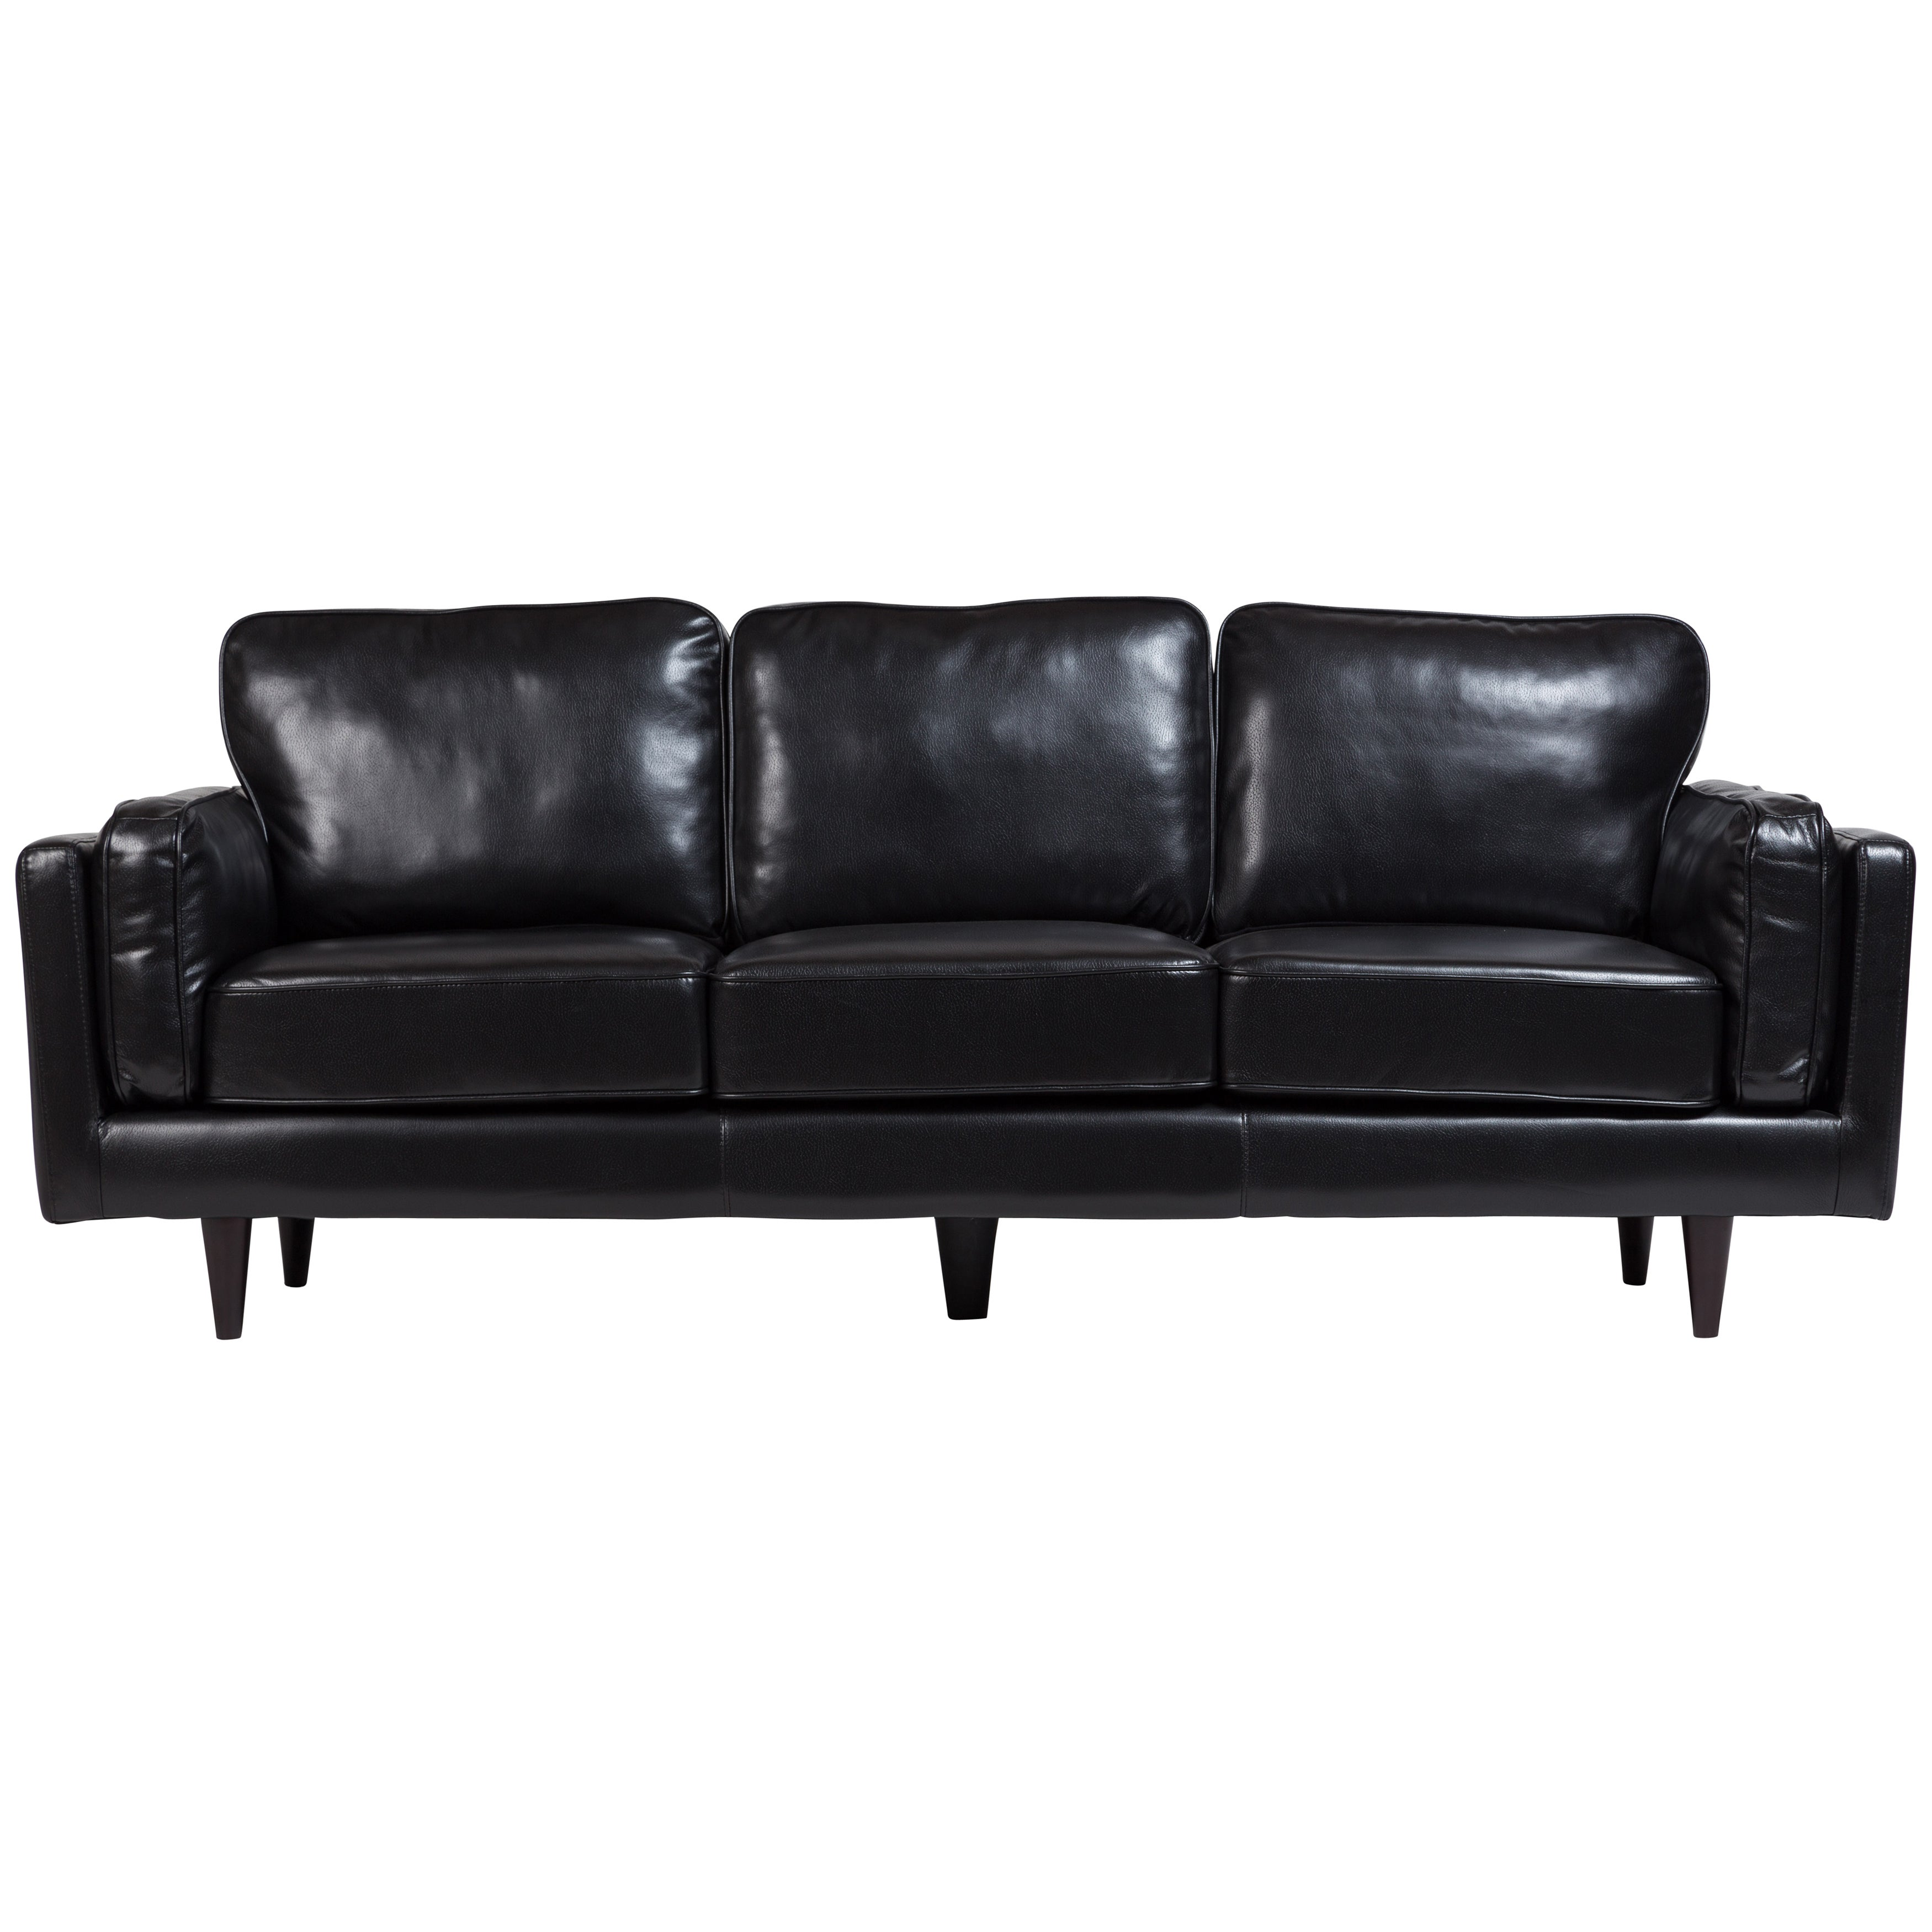 Shop Porter Dylan Black Leather Look Contemporary Mid Century Sofa